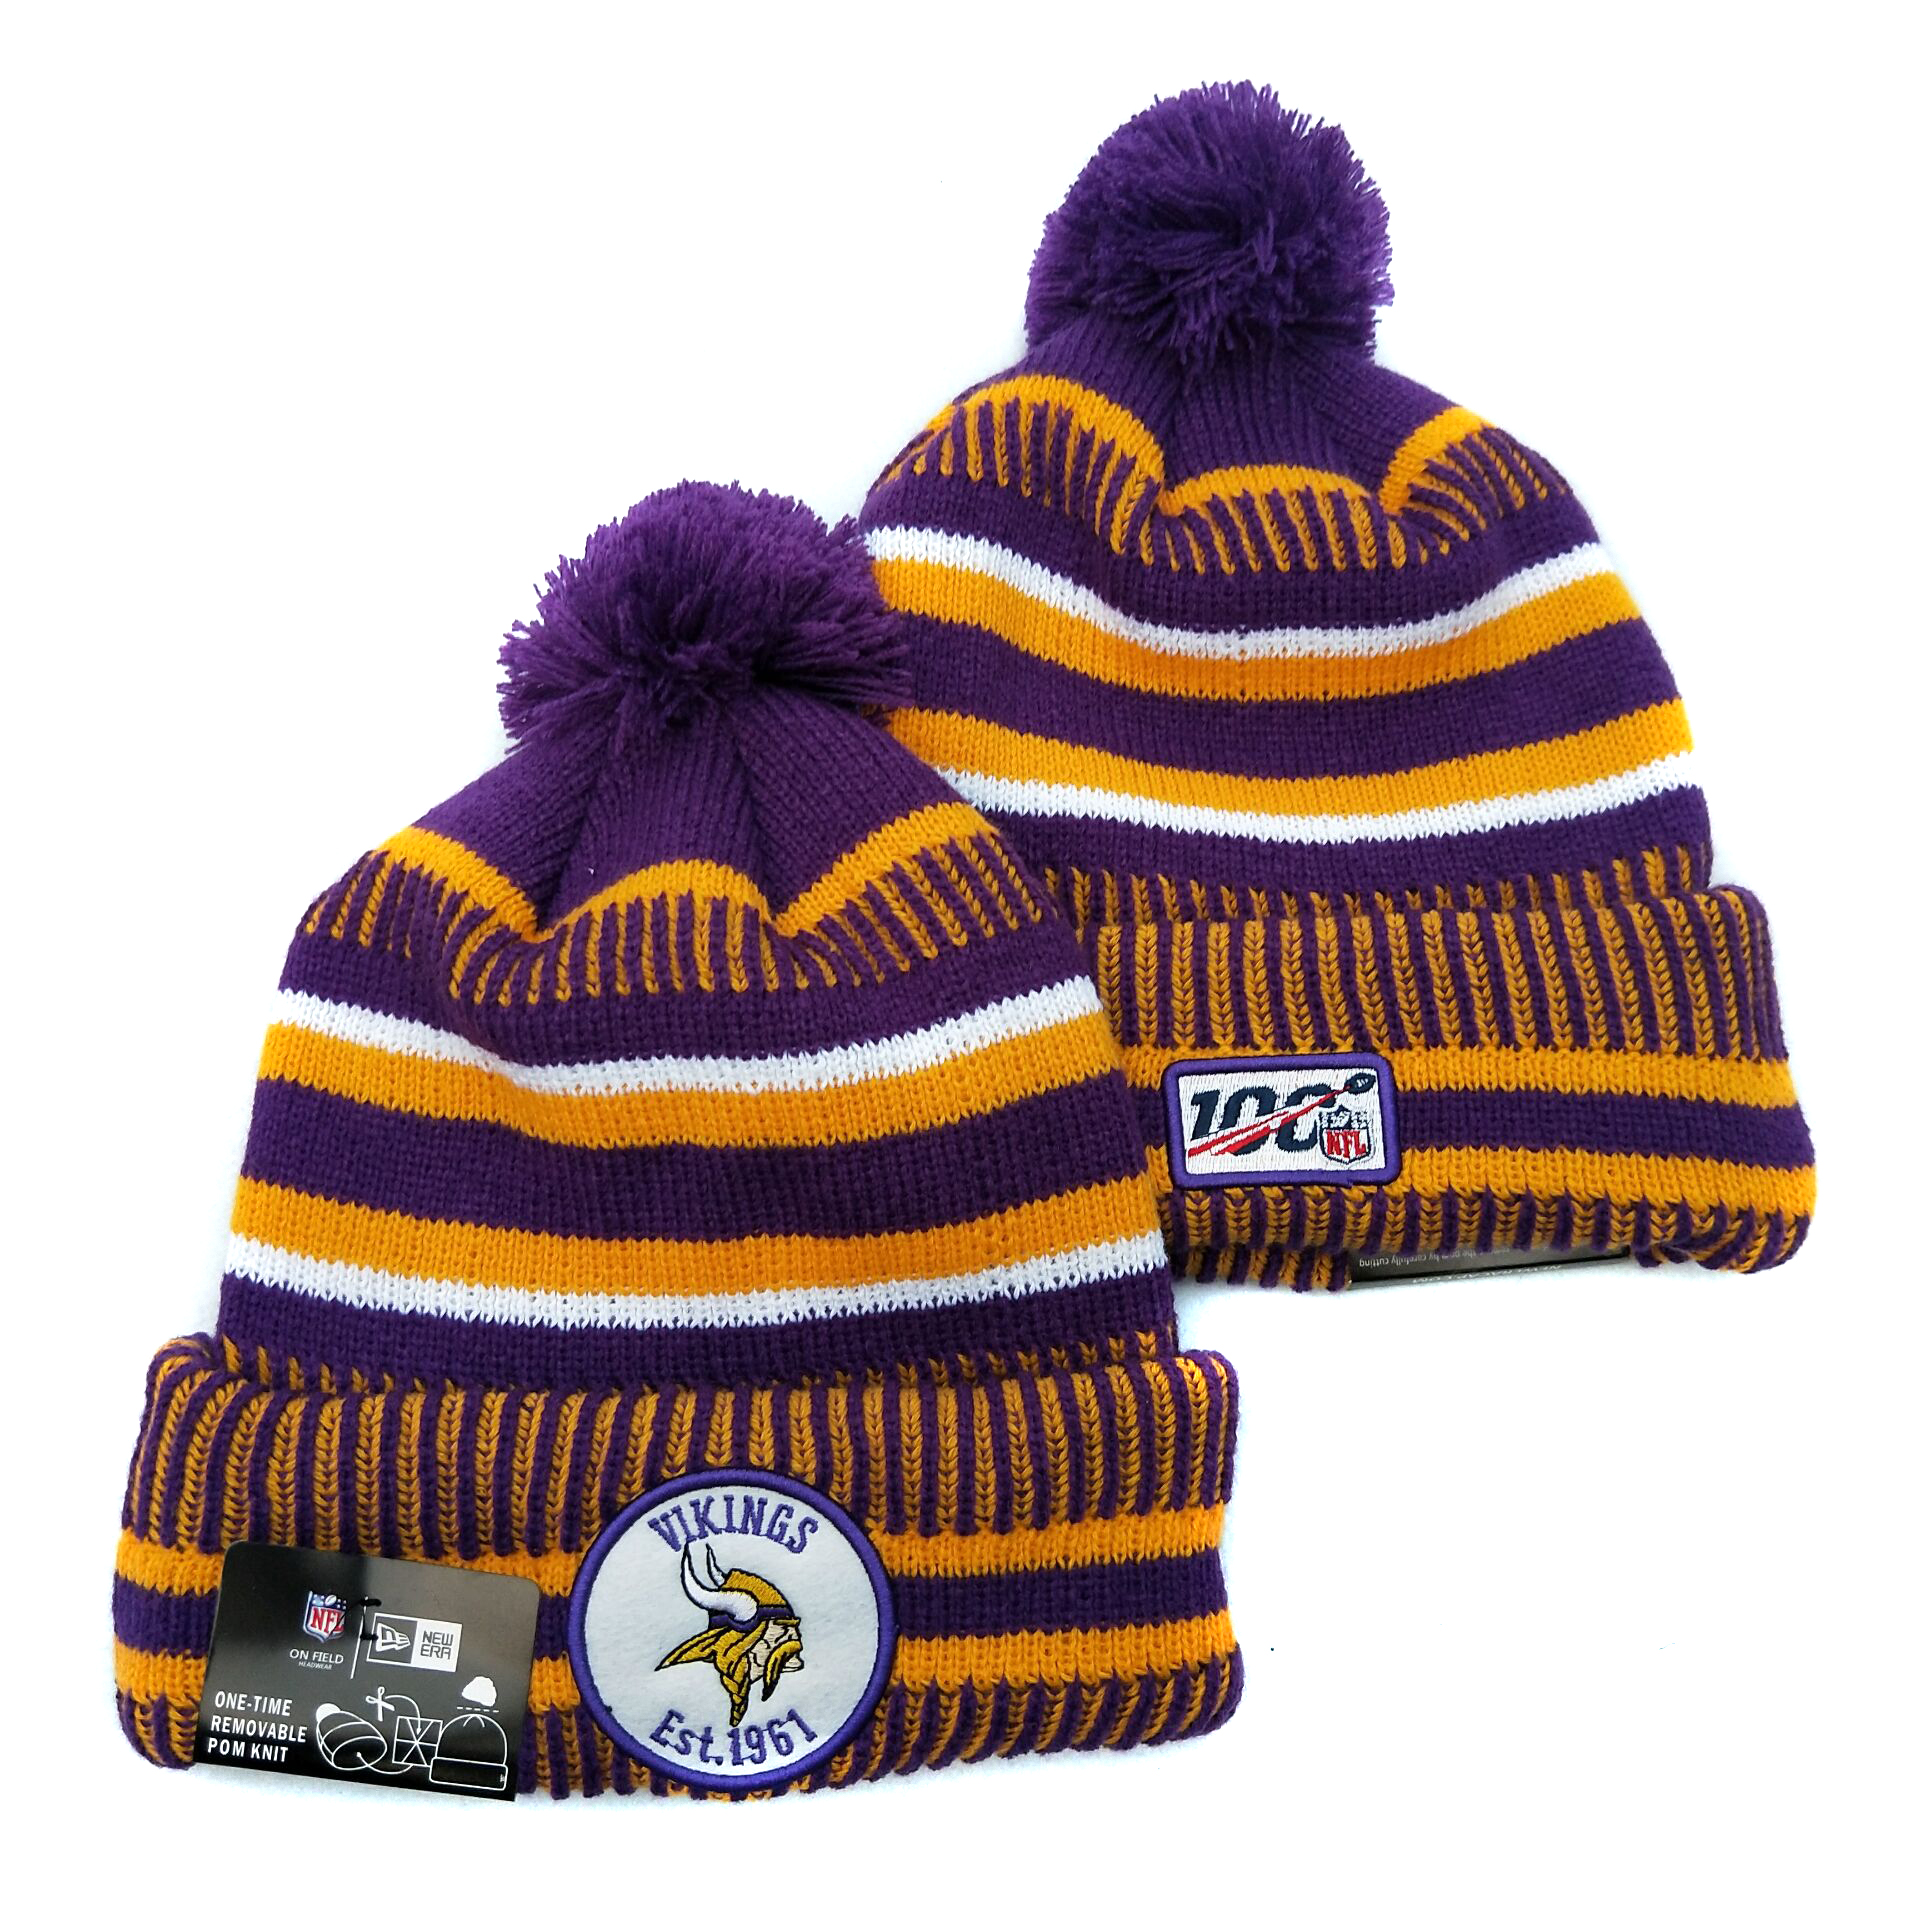 Minnesota Vikings Knit Hats 034